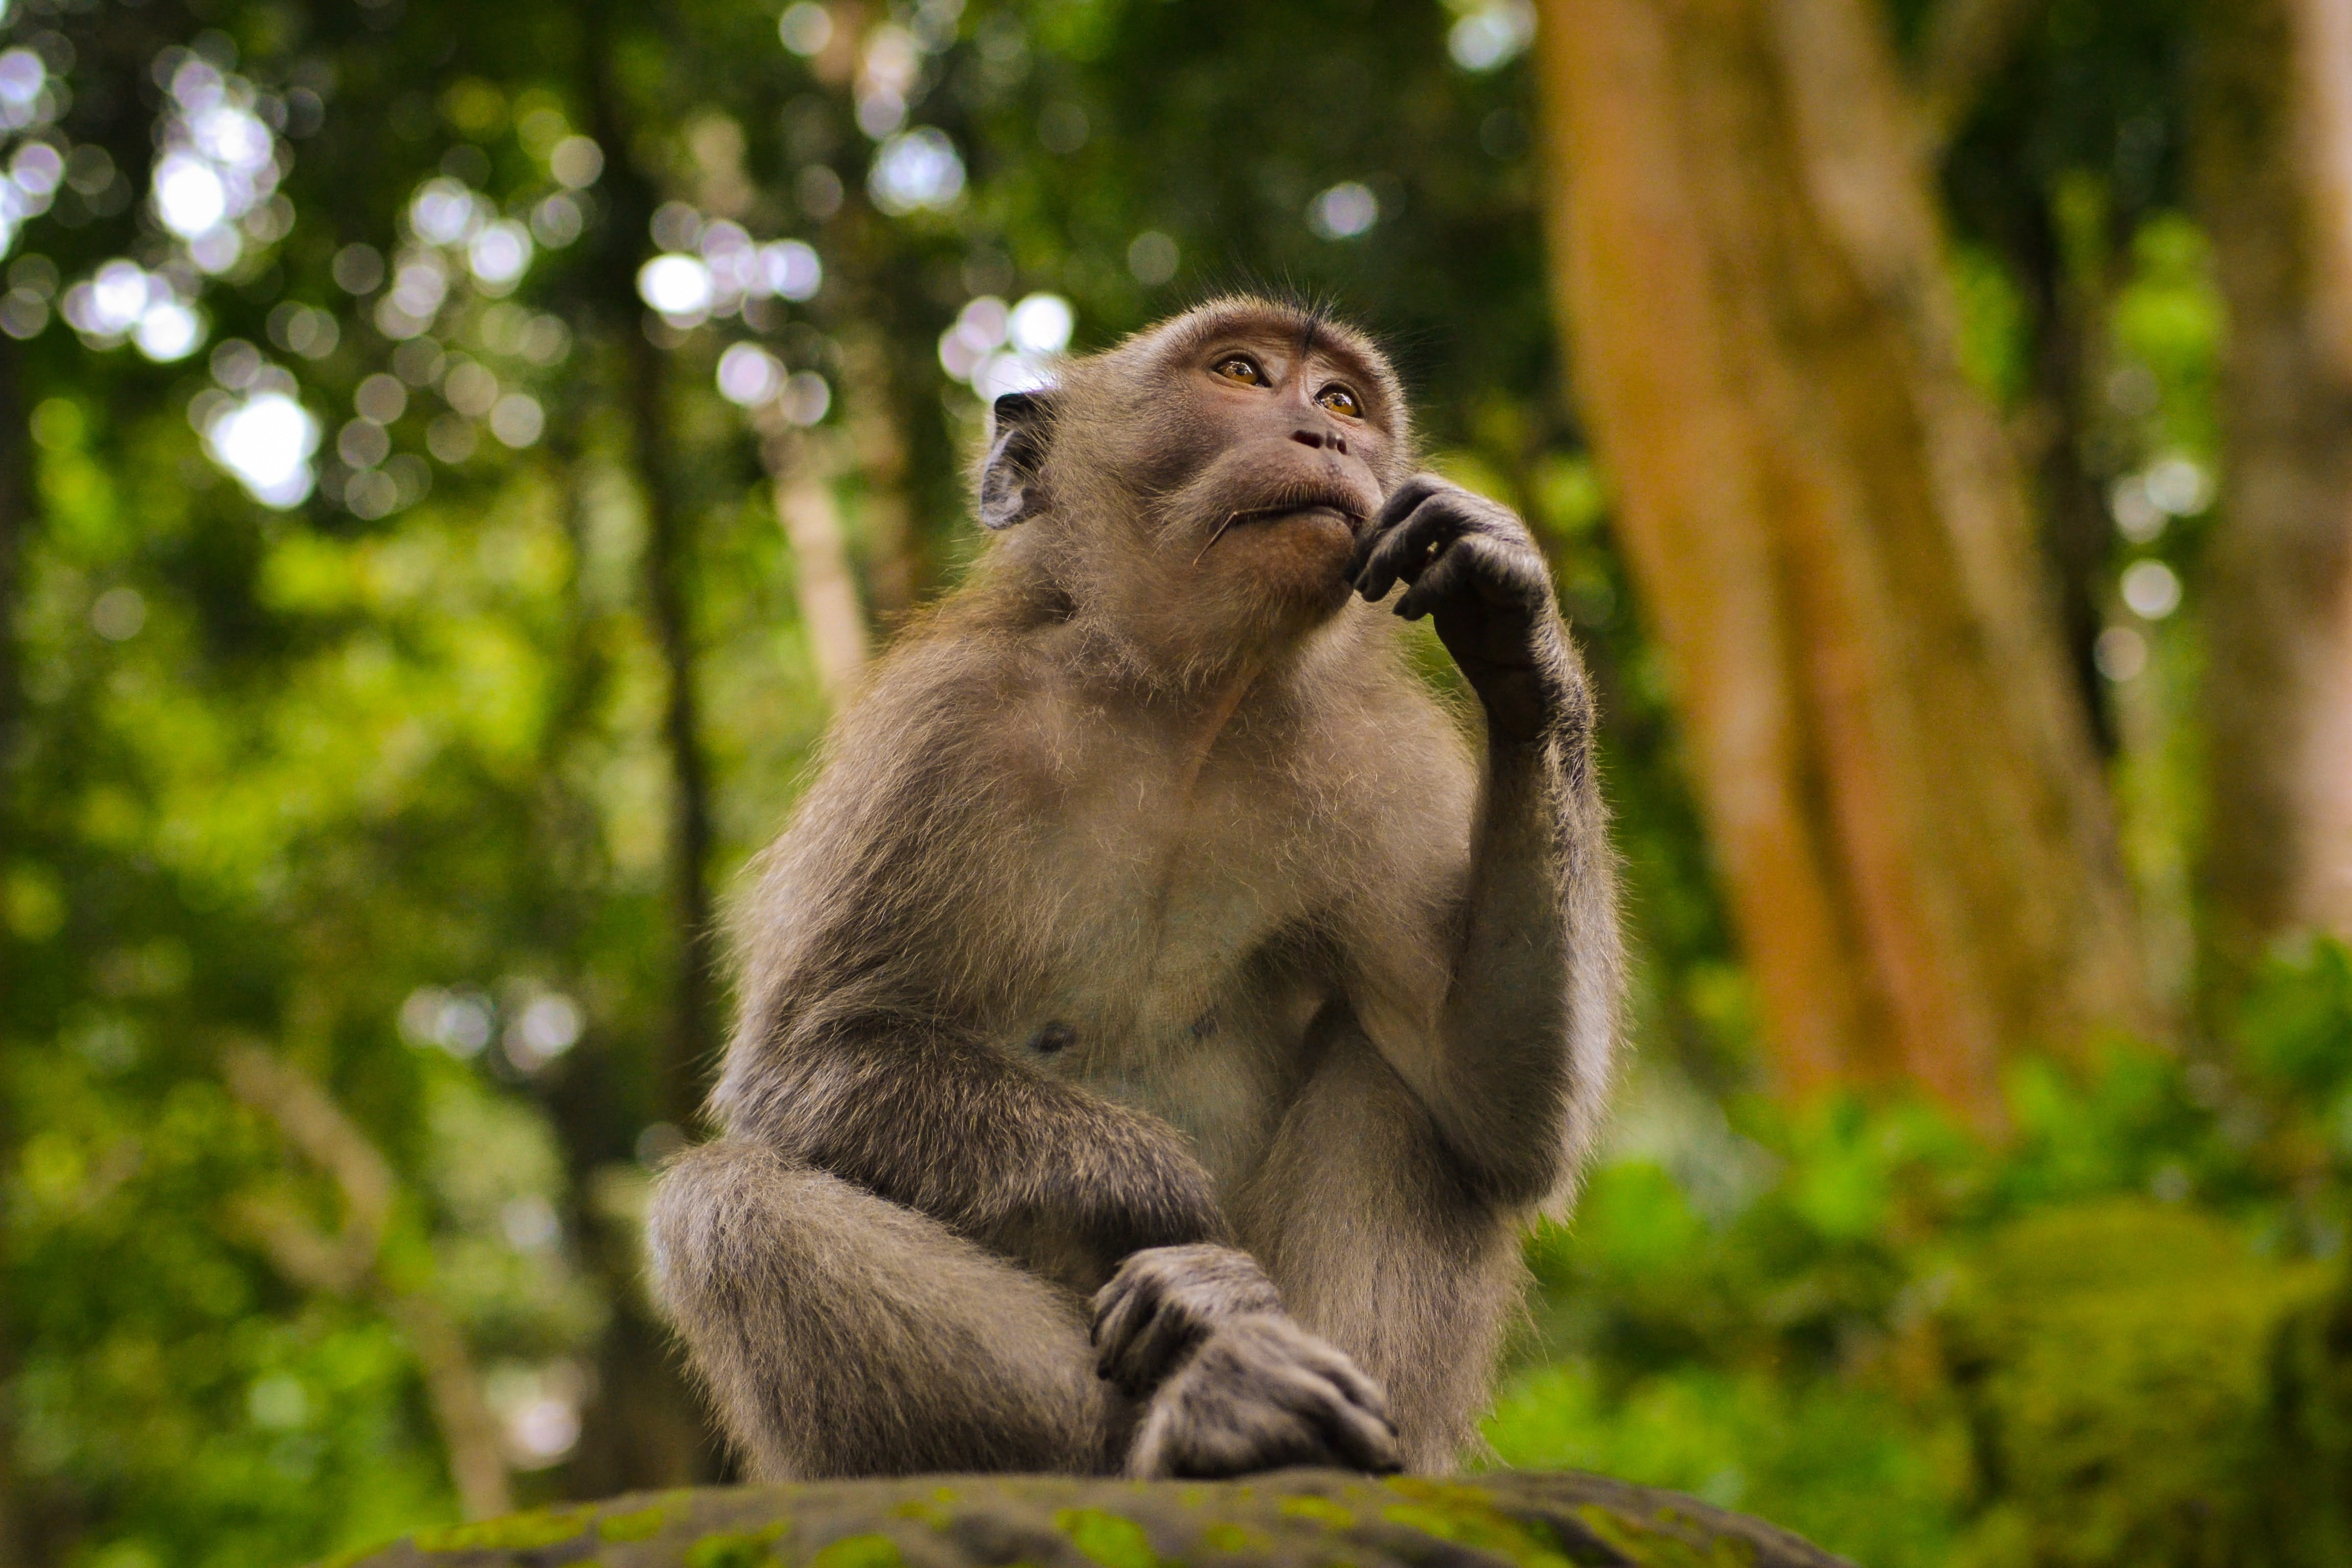 A picture of Juan the monkey thinking